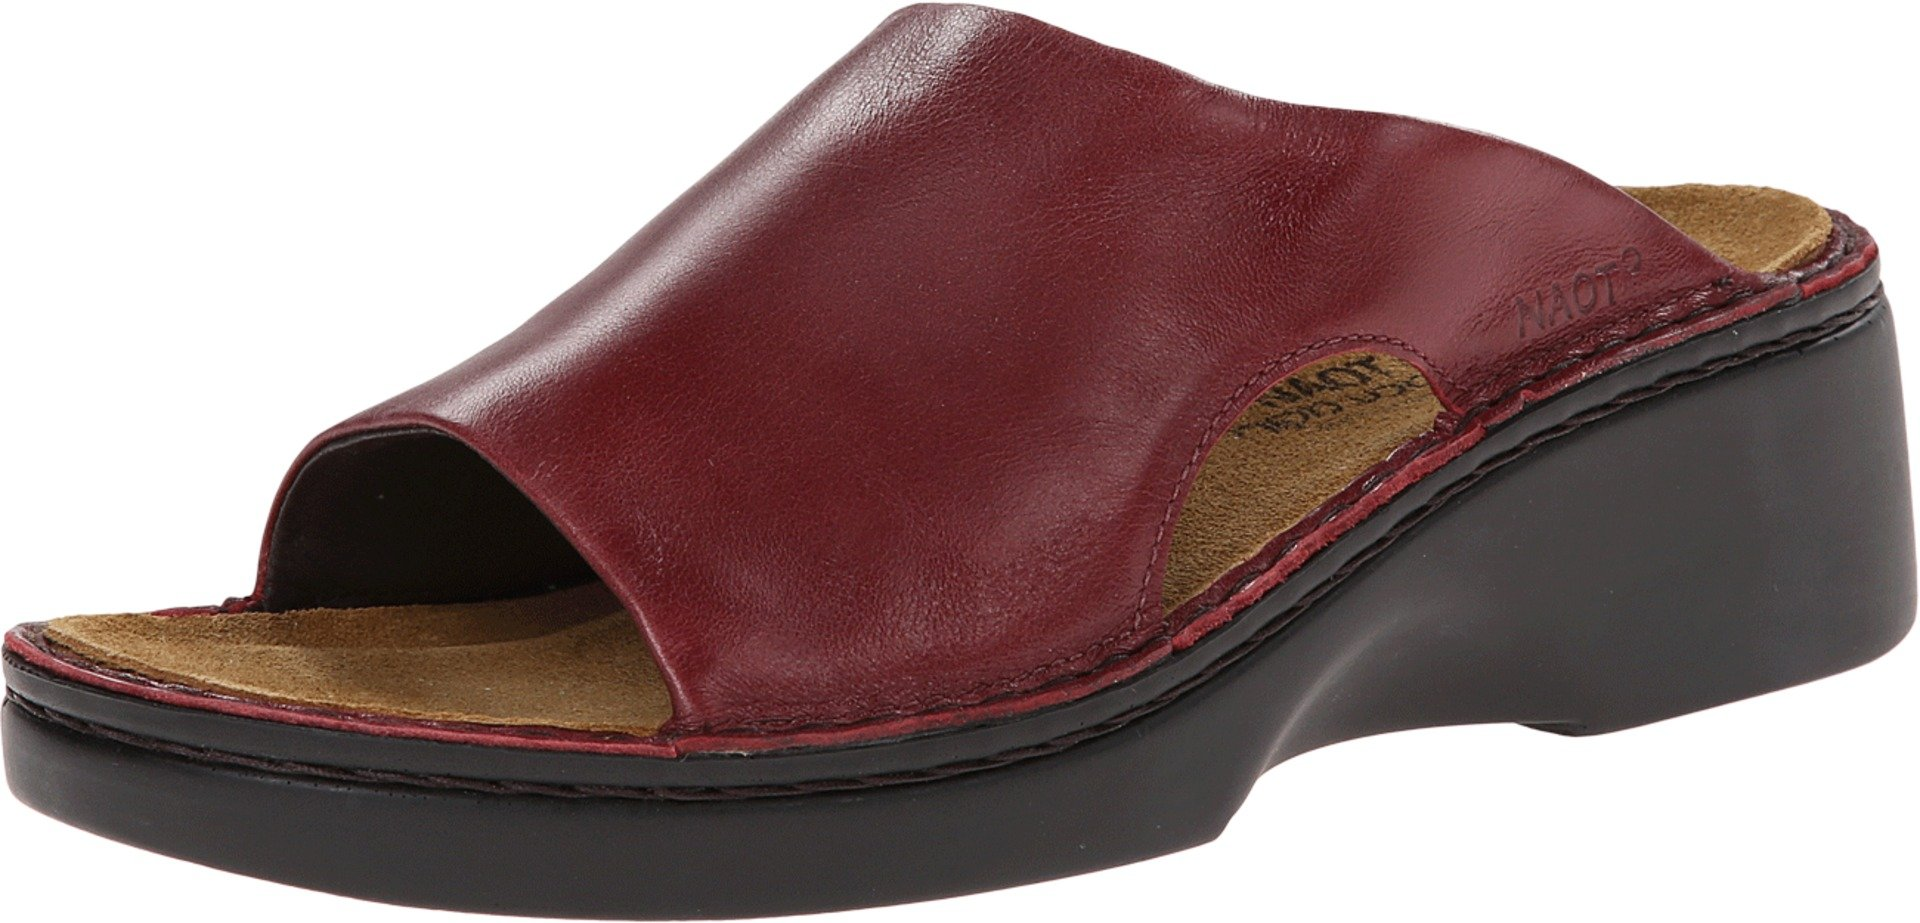 Naot Women's Rome Wedge Sandal, Rumba, 39 EU/8 M US by NAOT